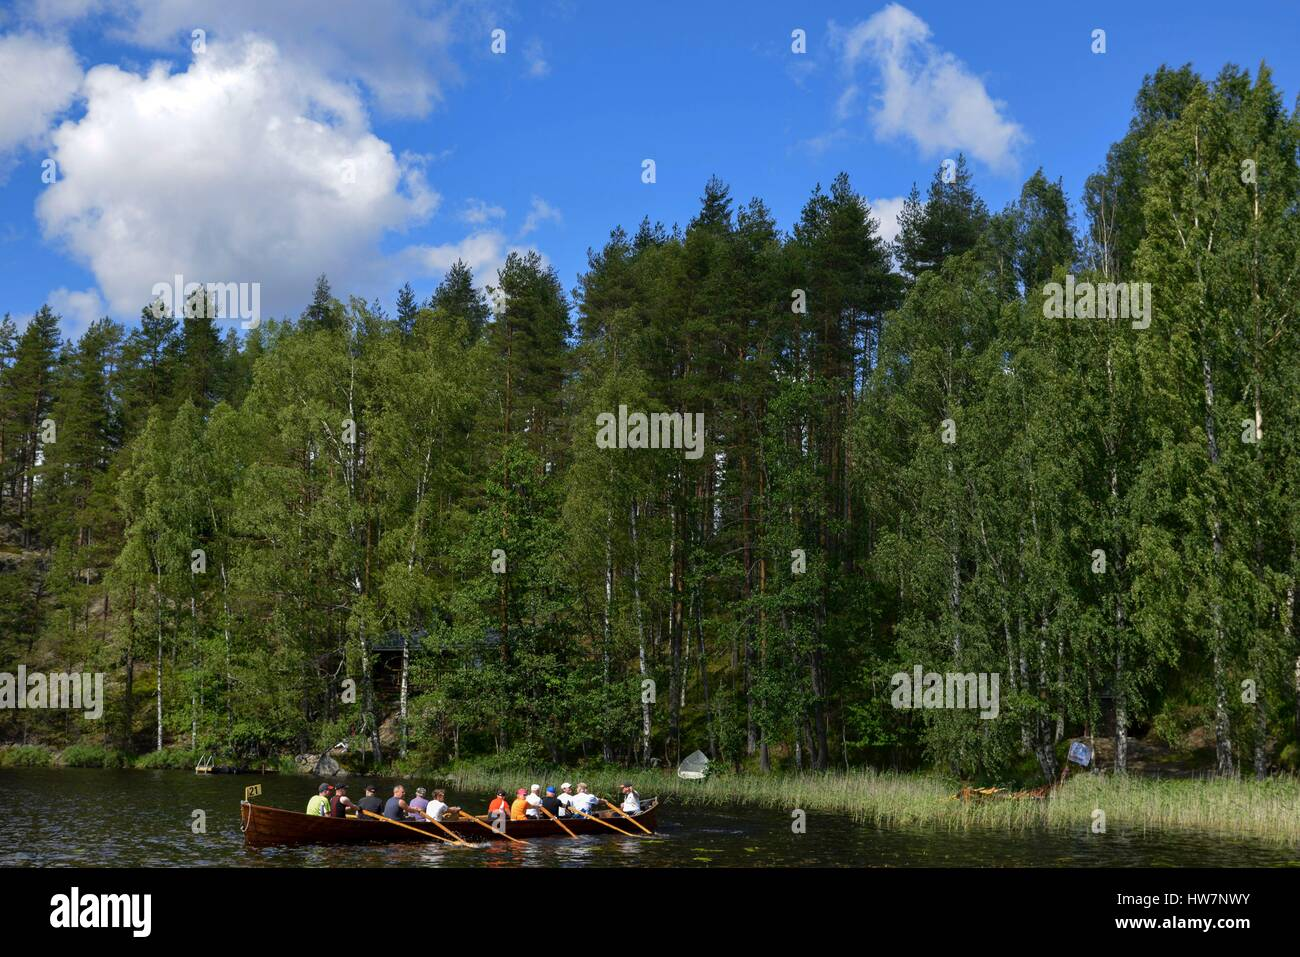 Finland, province of oriental Finland, Sulkava, rowing race on a lake aboard a Muikka the Finnish traditional boat - Stock Image